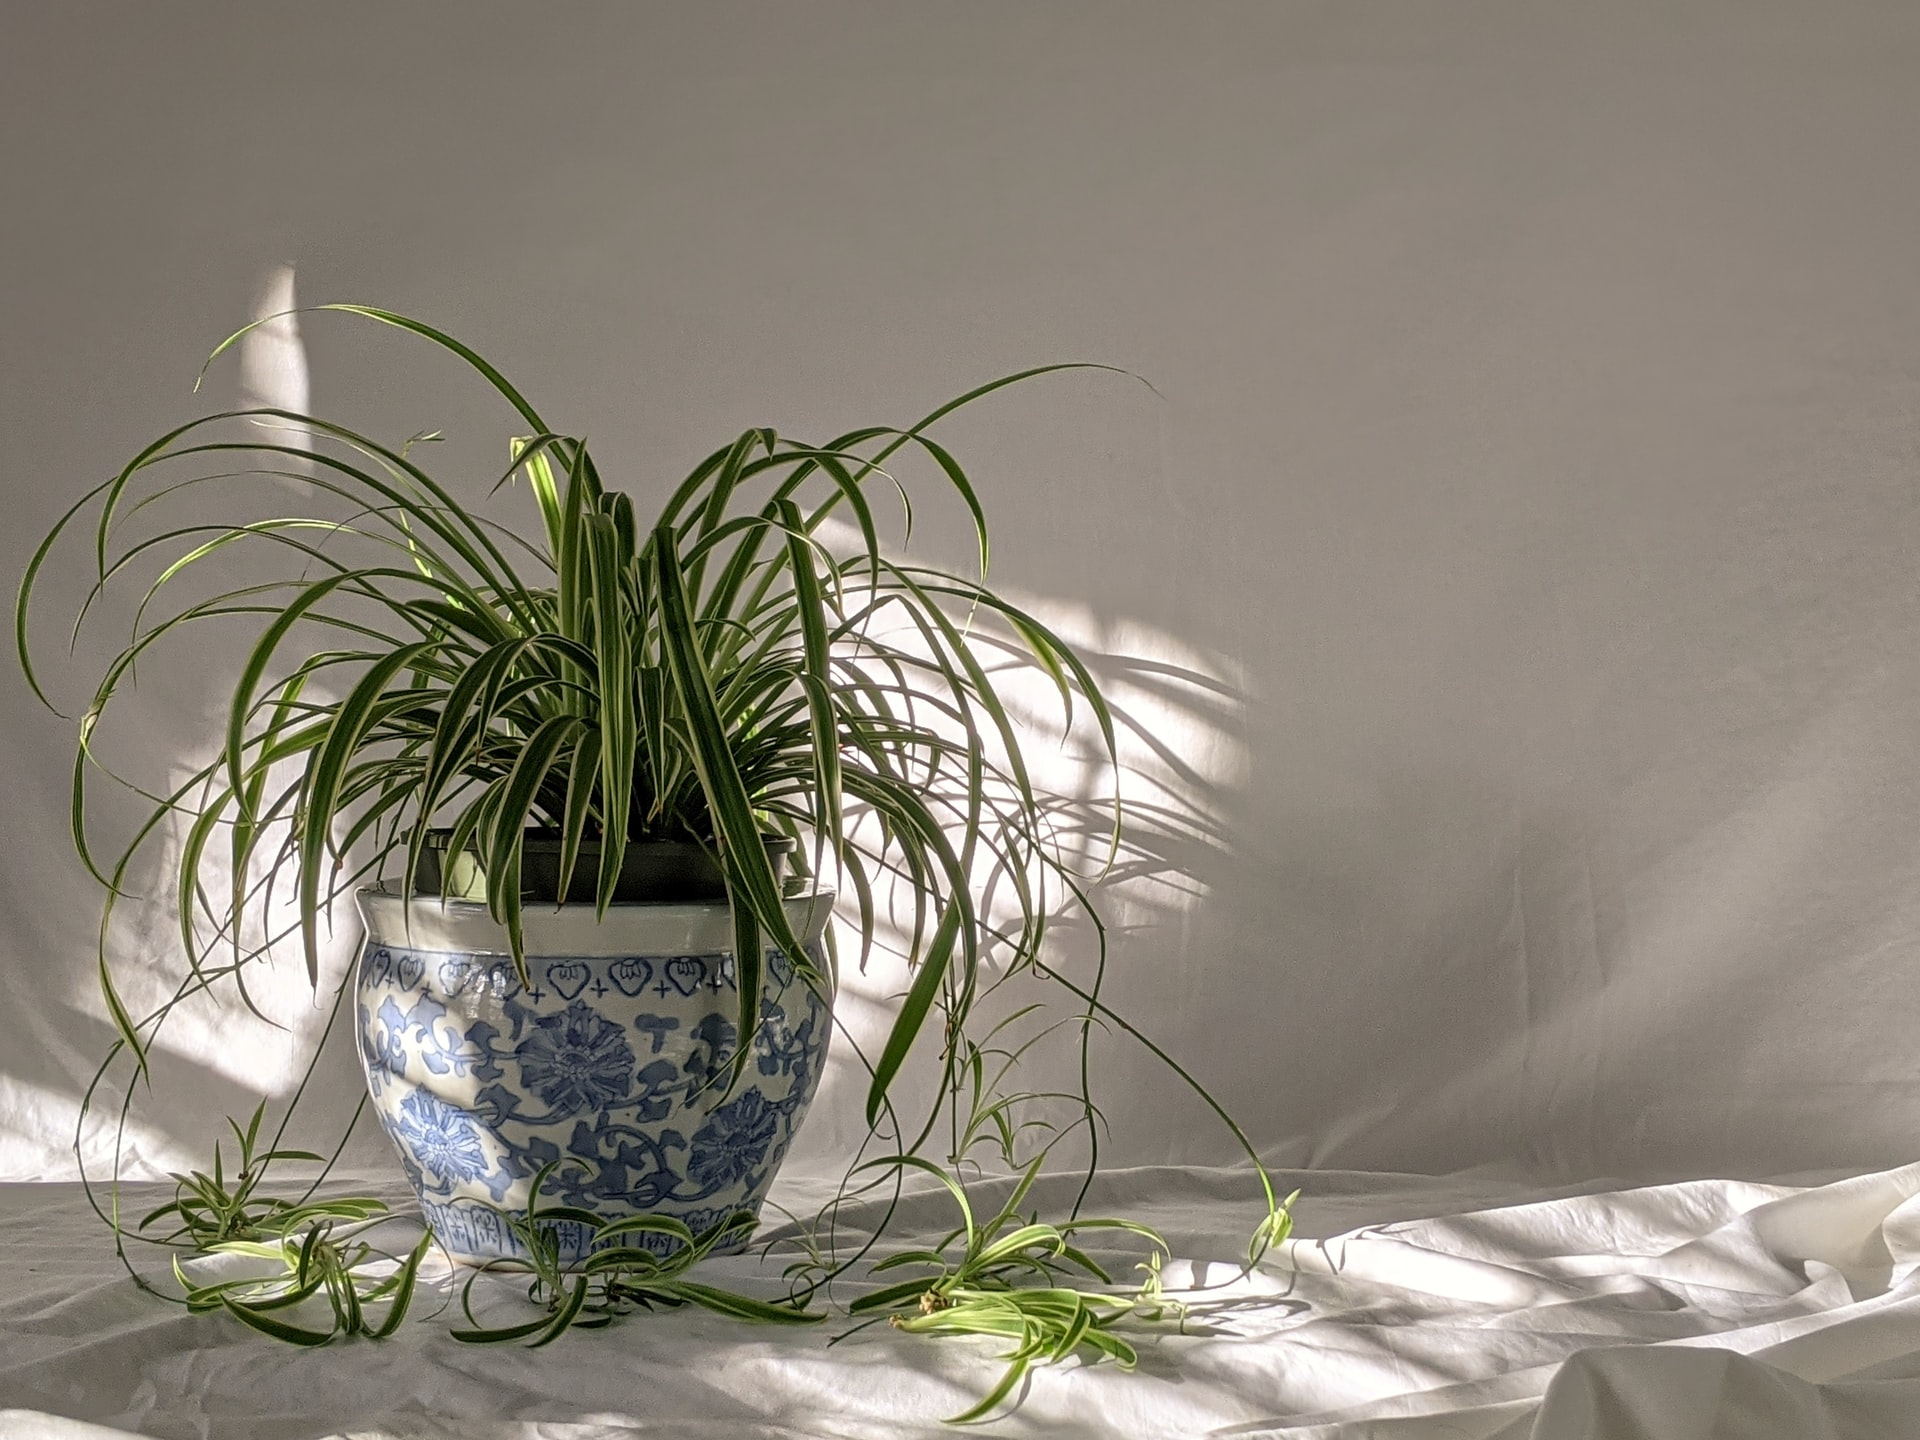 Apartment-Friendly Houseplants to Add to Your Must-Grow List